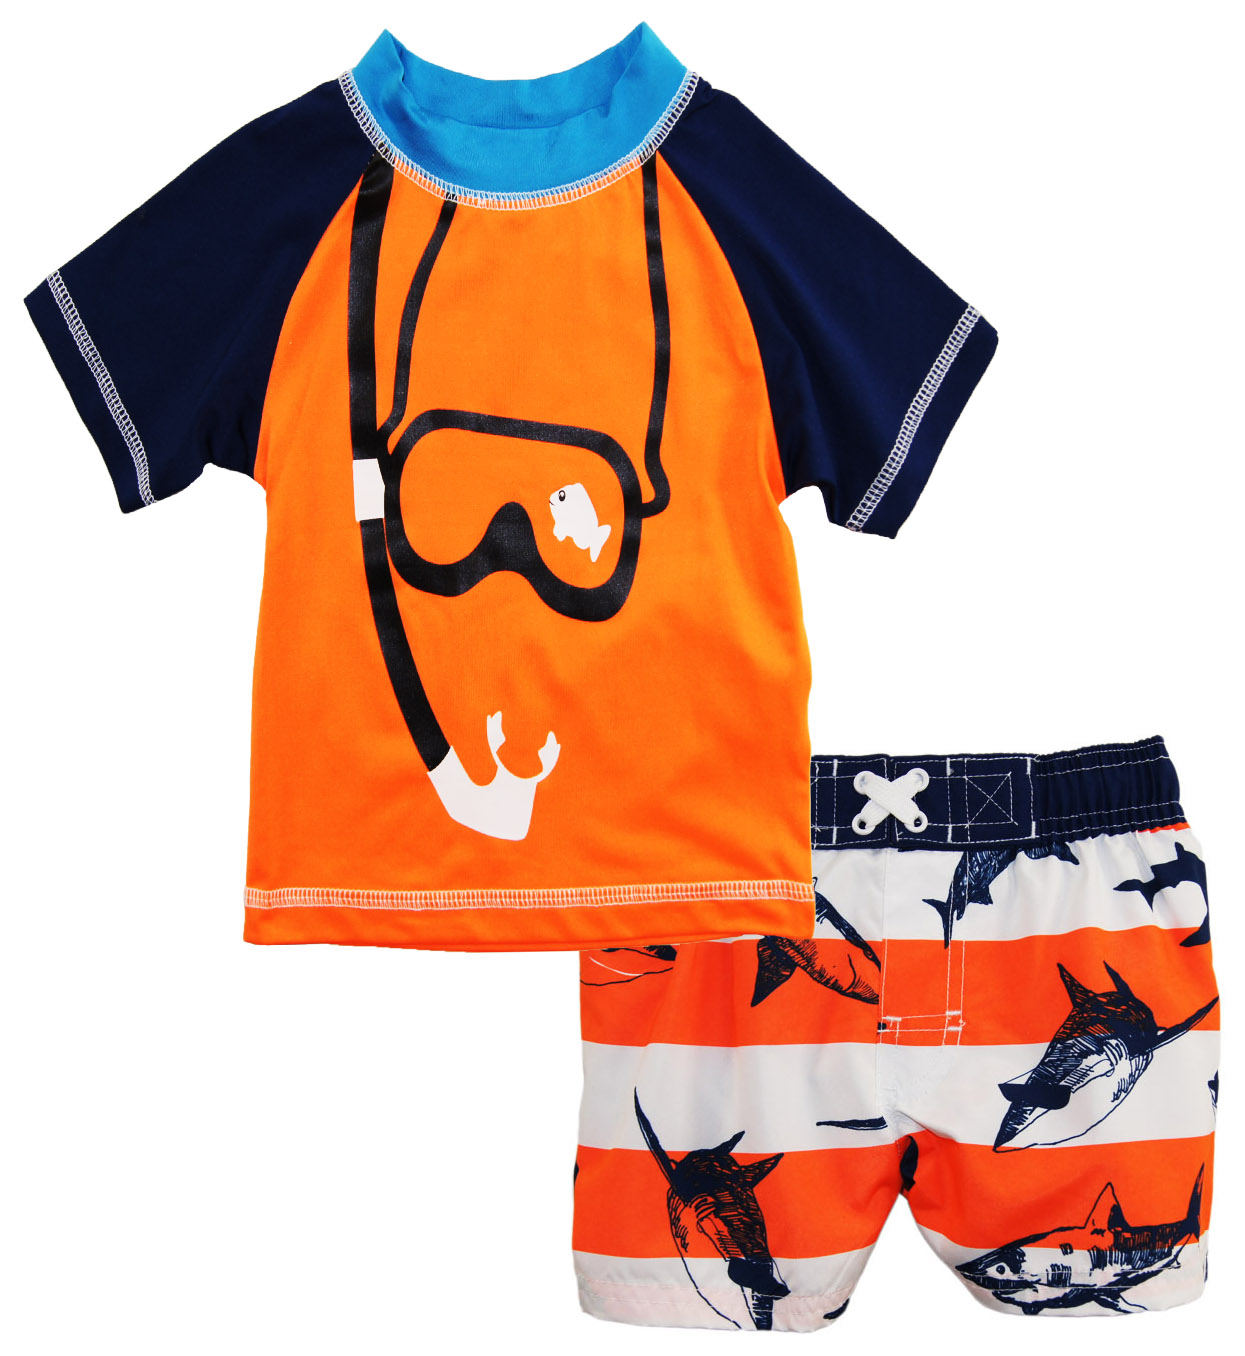 Baby Boys' Snorkeling with Sharks 2-Piece Rashguard Top Swim Short Set